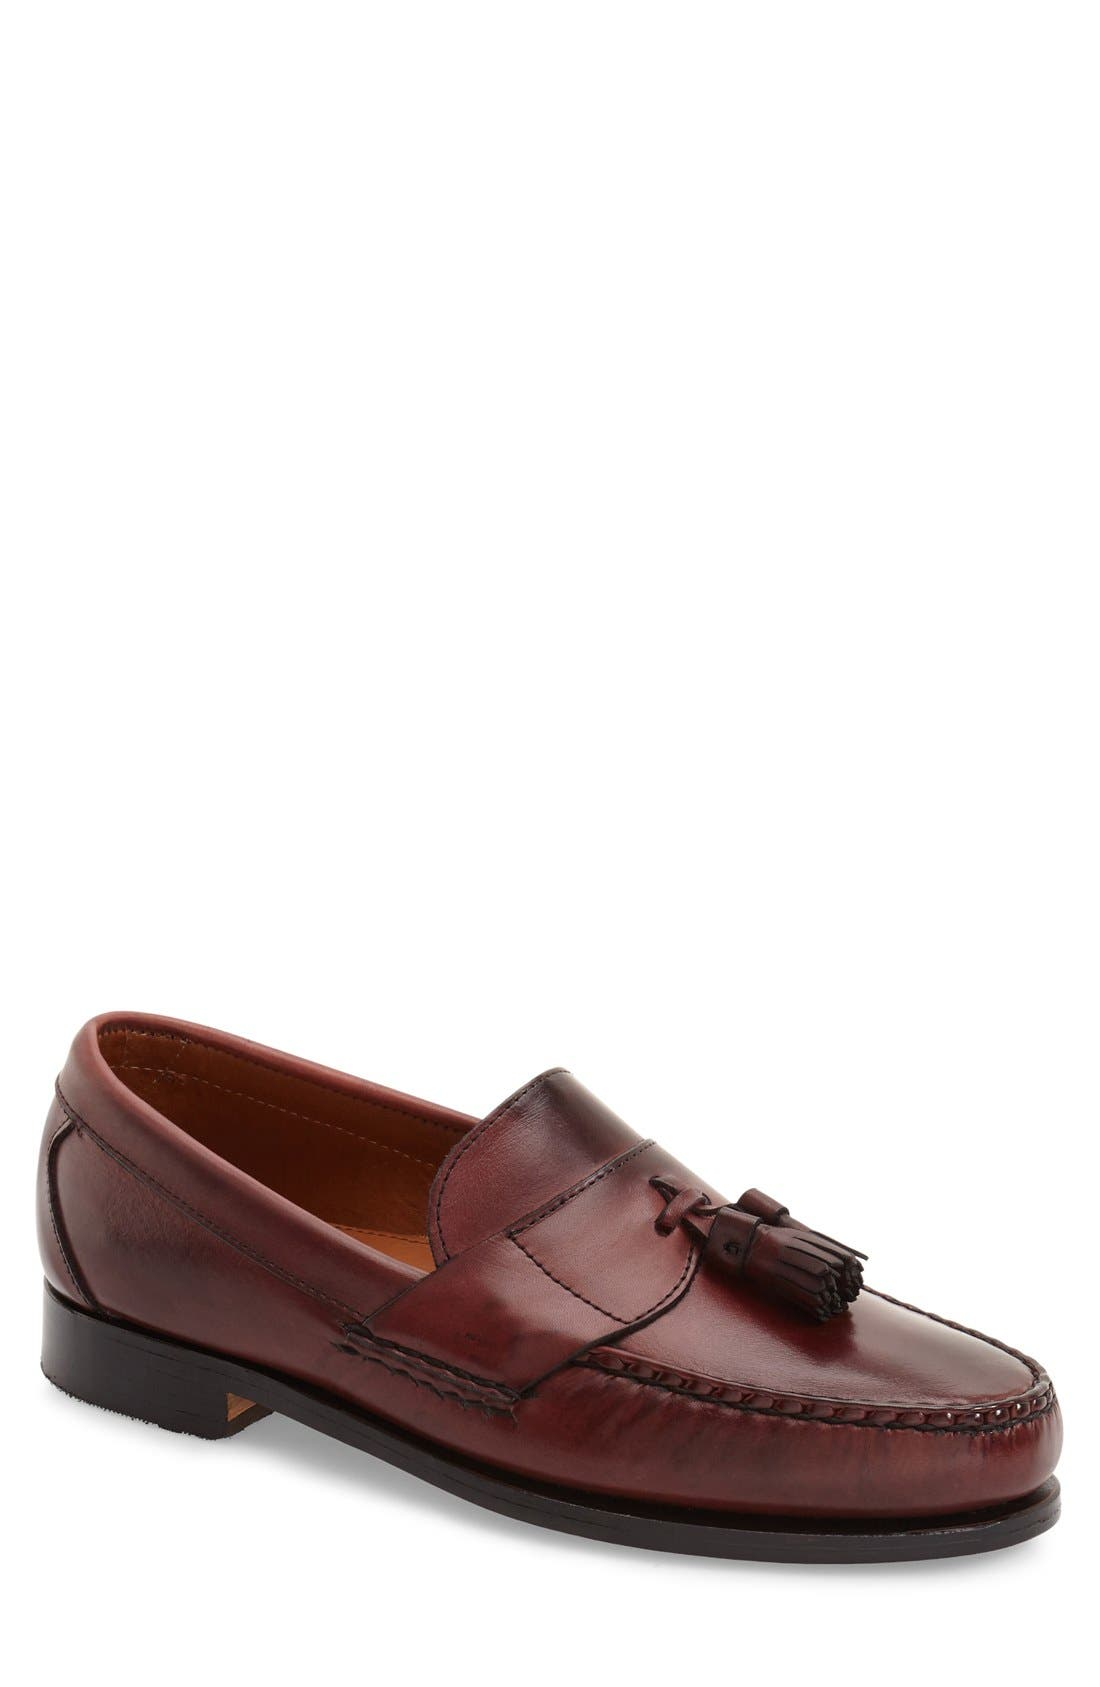 Tassel Penny Loafer,                             Main thumbnail 1, color,                             OXBLOOD